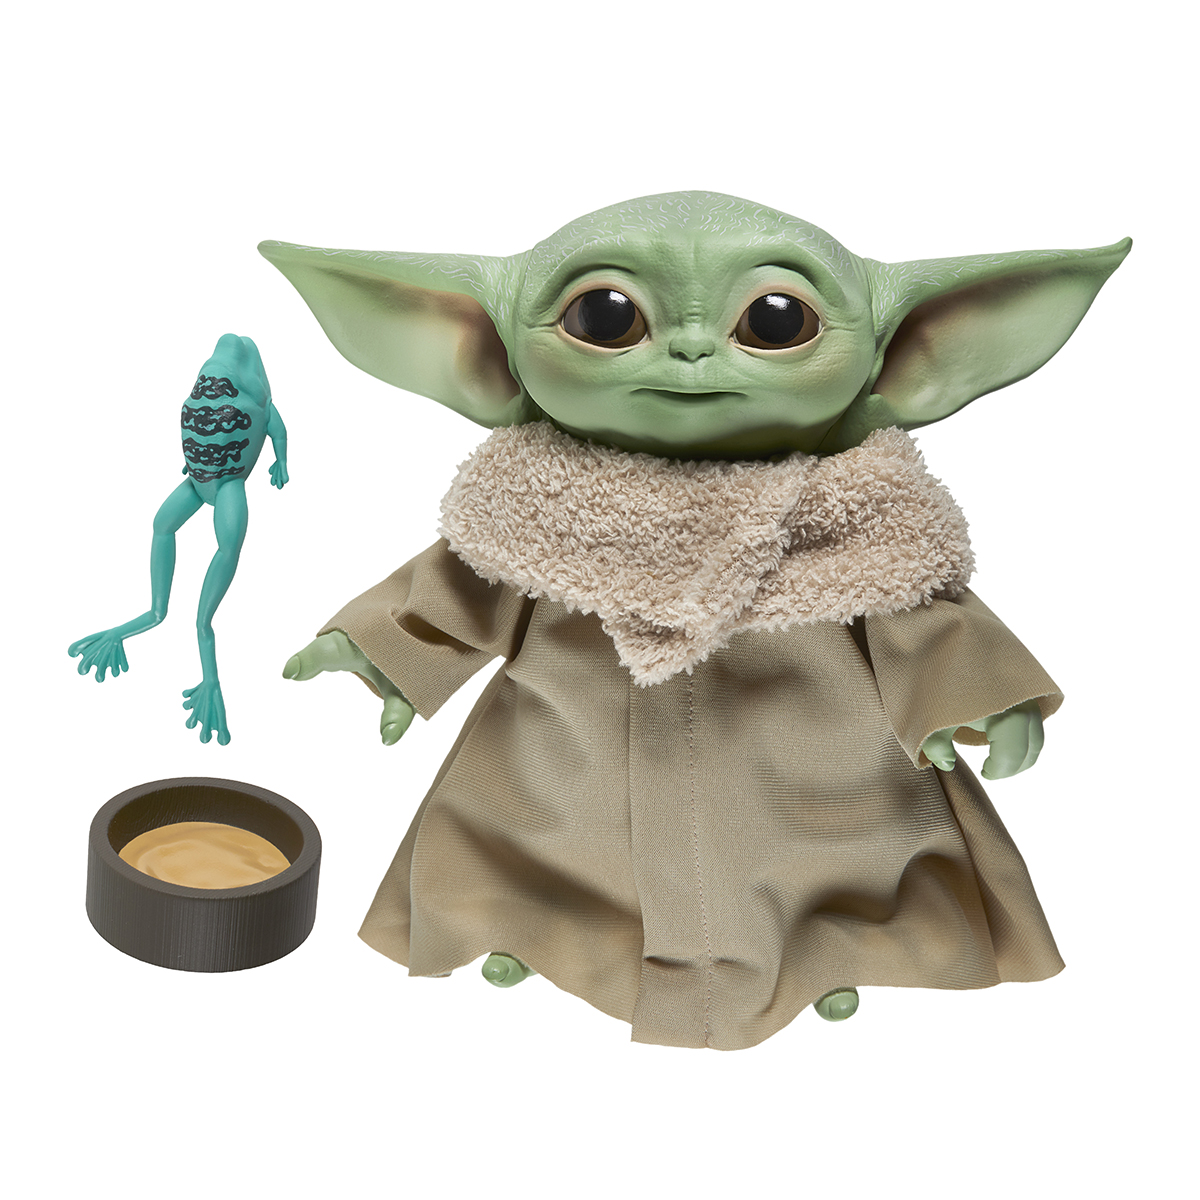 Jucarie interactiva de plus cu sunete Star Wars Baby Yoda, 19 cm imagine 2021